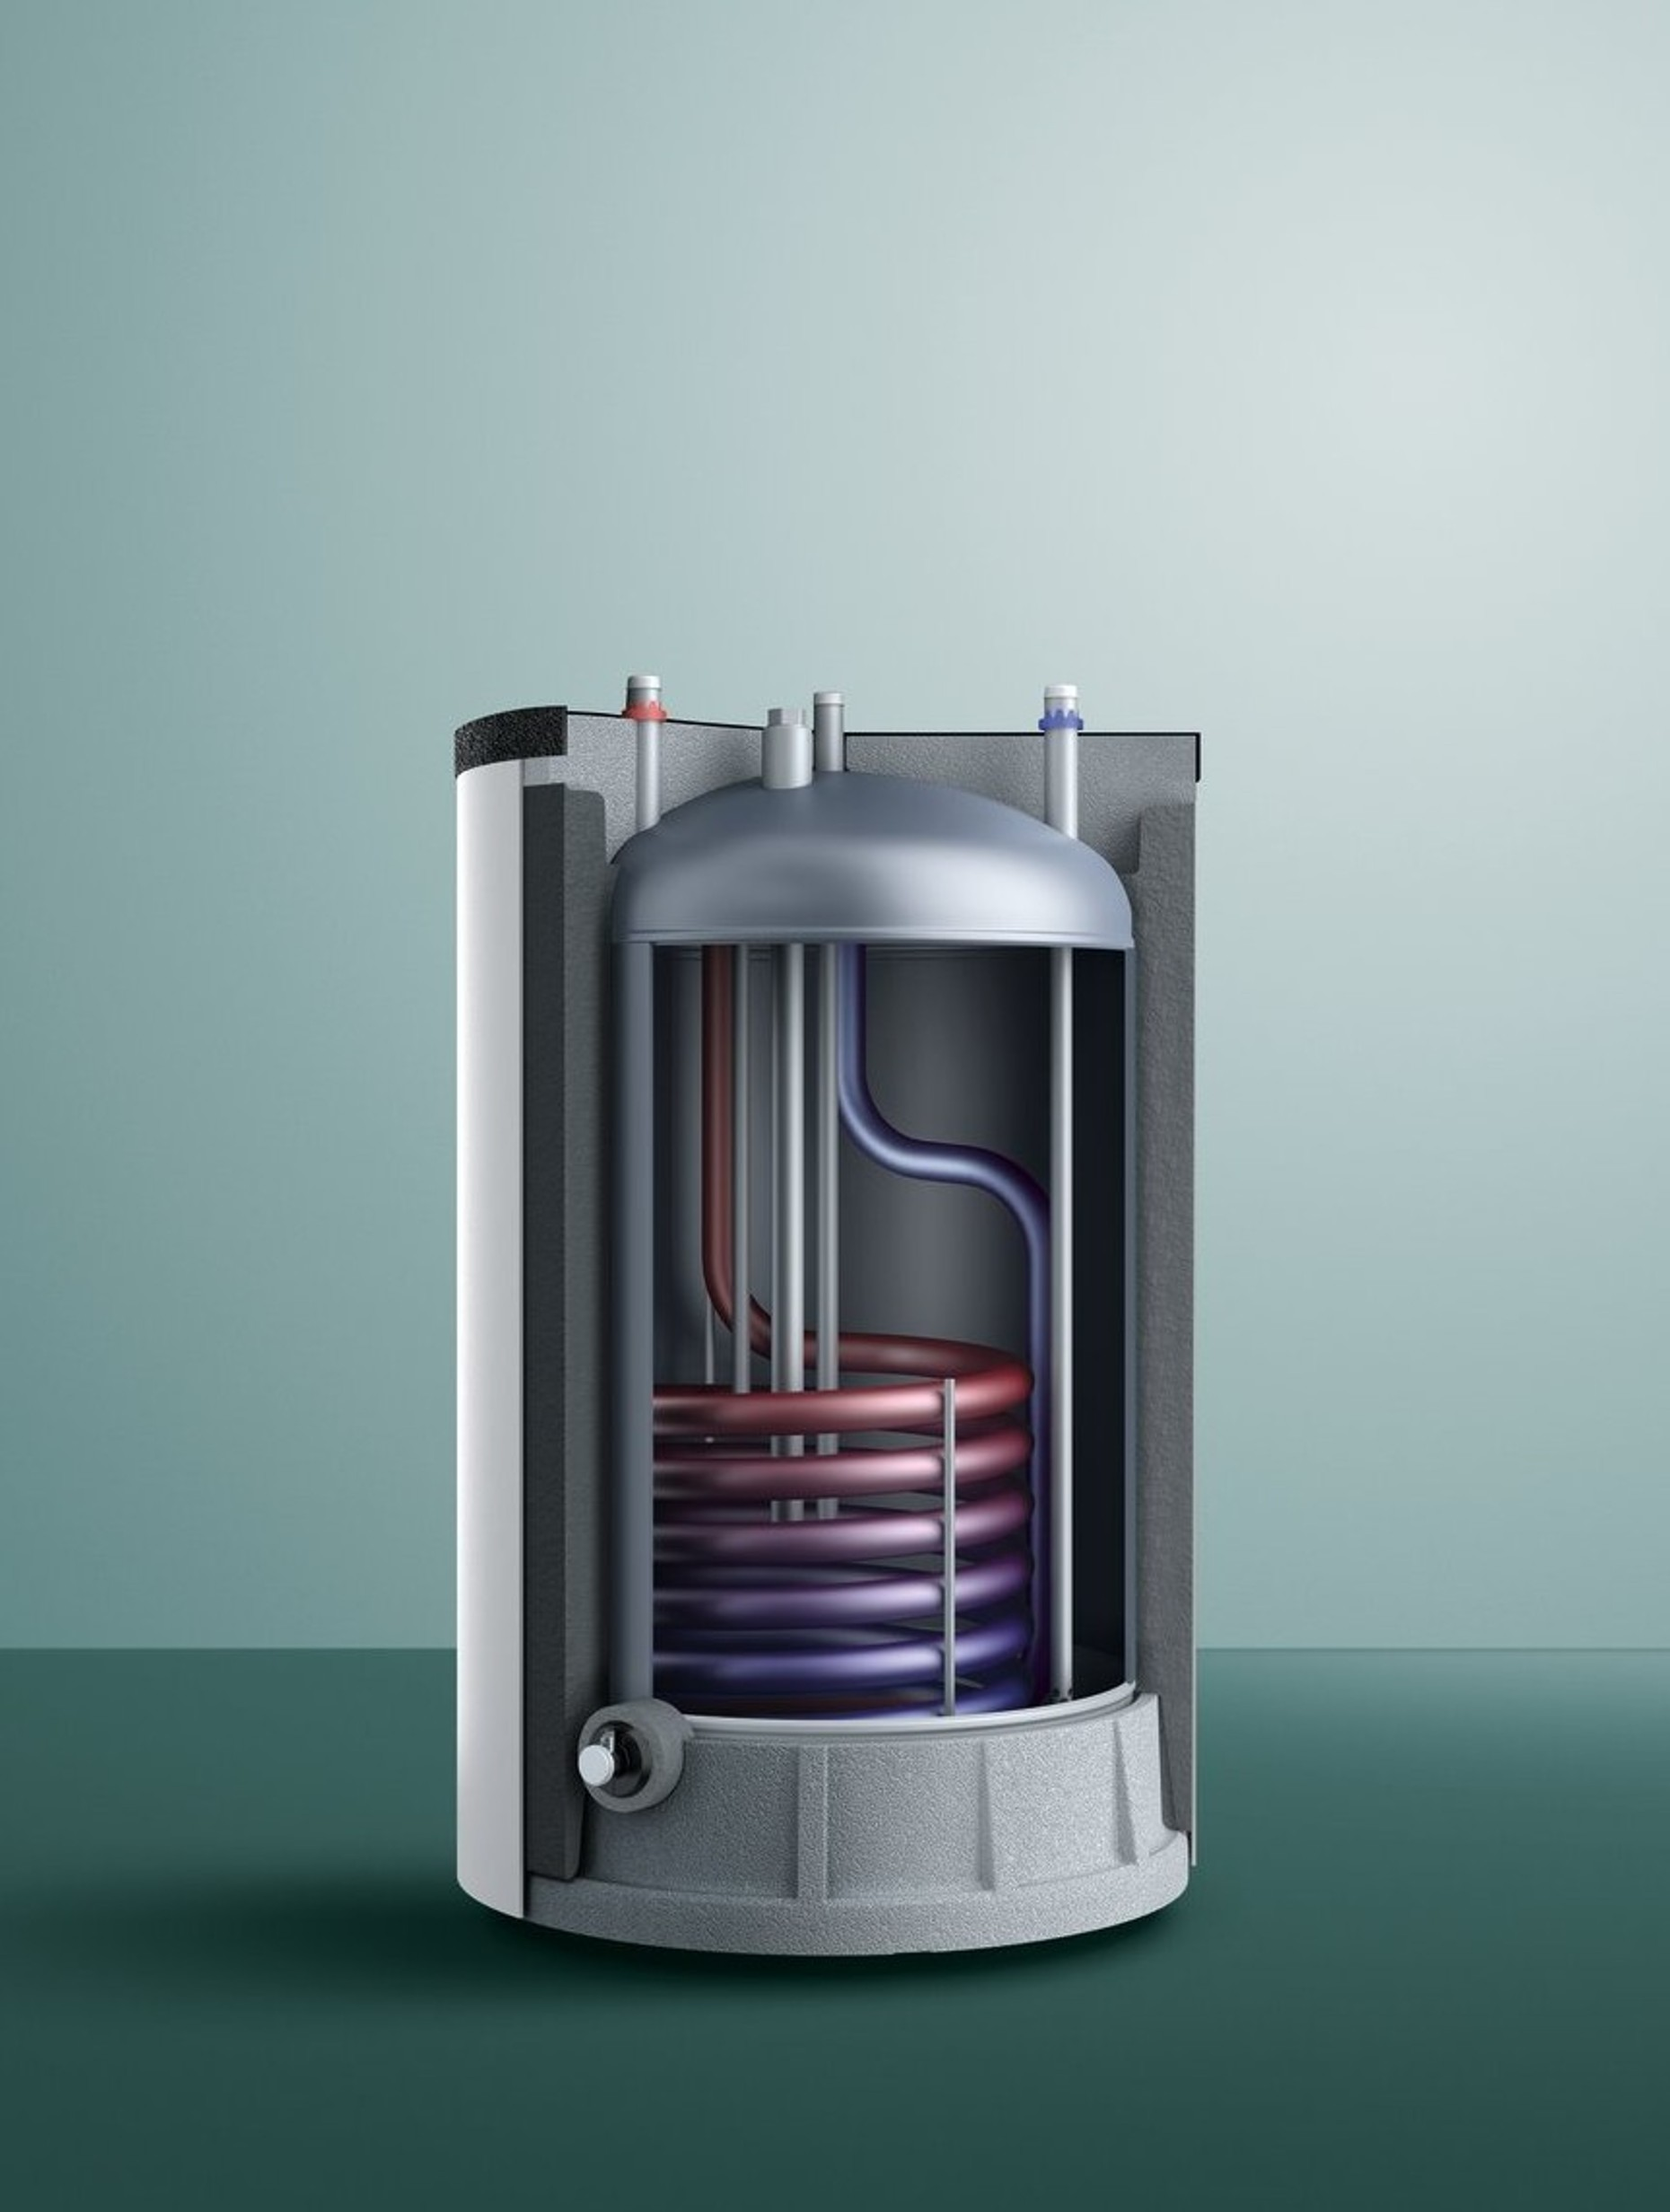 uniSTOR VIH - Impeccable performance: all the hot water you want ...